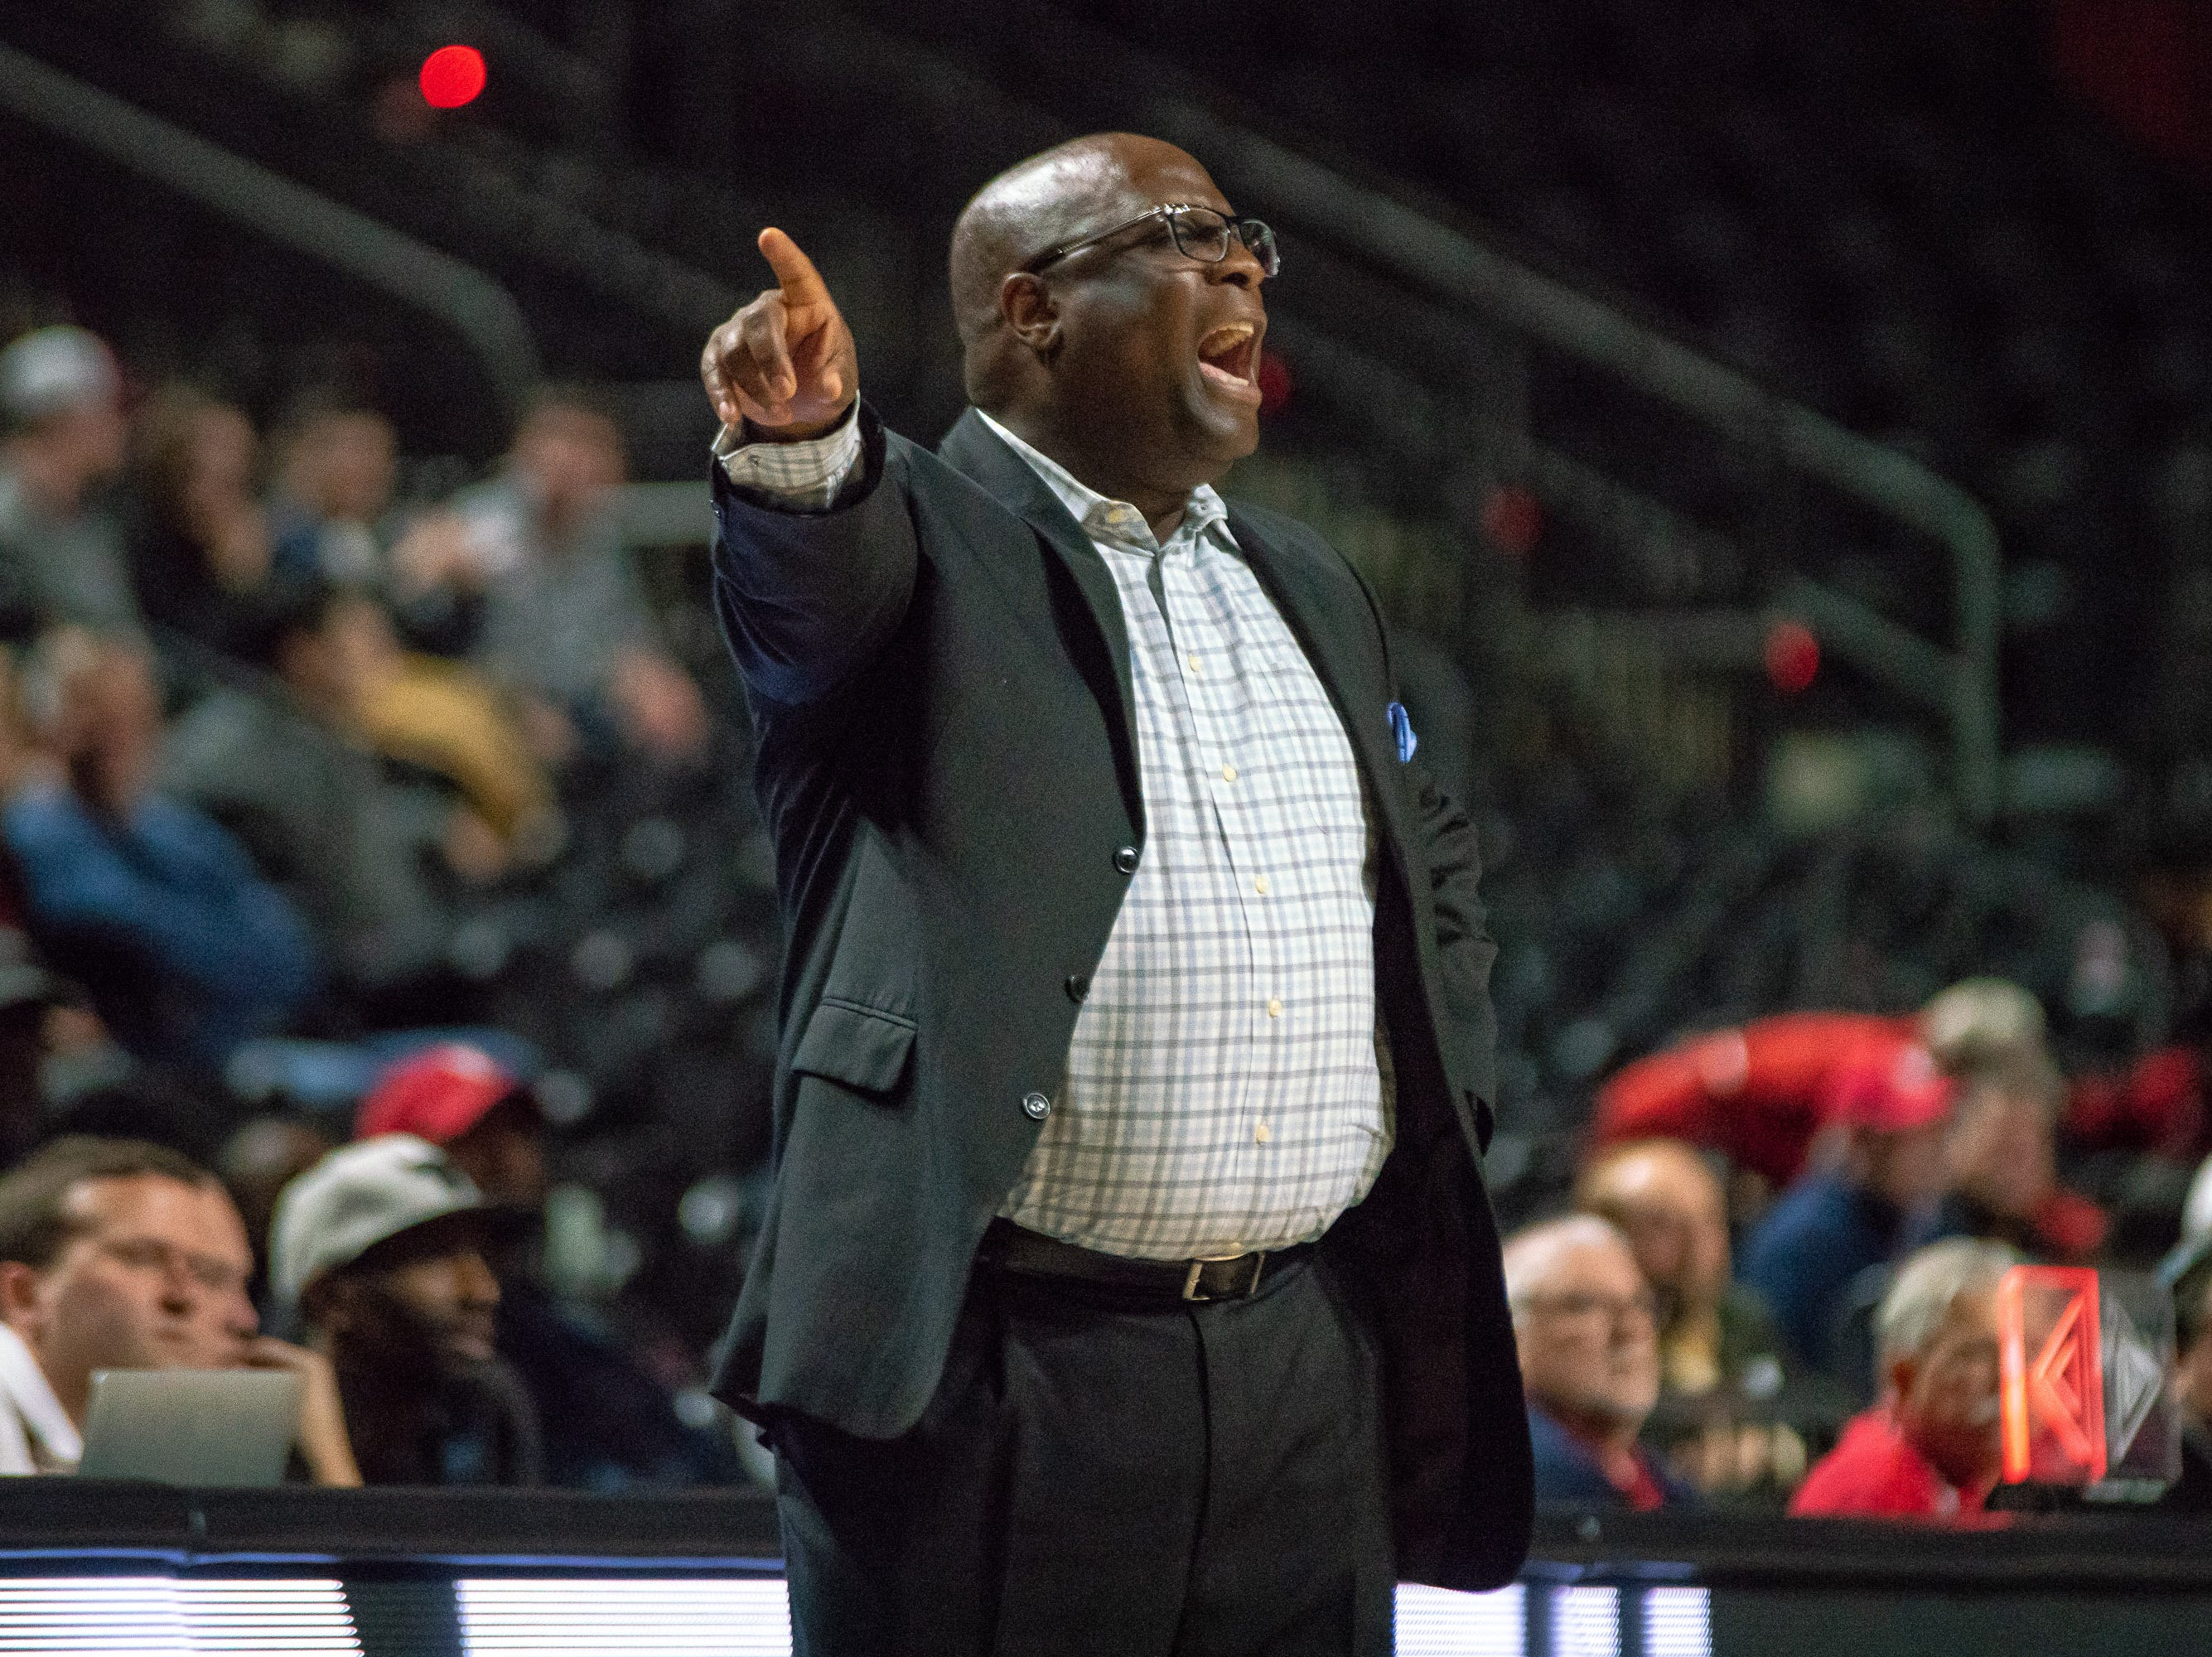 Georgia State's head coach Gene Hill coaches his players from the sidelines as the Ragin' Cajuns play against the Georgia State Panthers at the Cajundome on January 10, 2019.